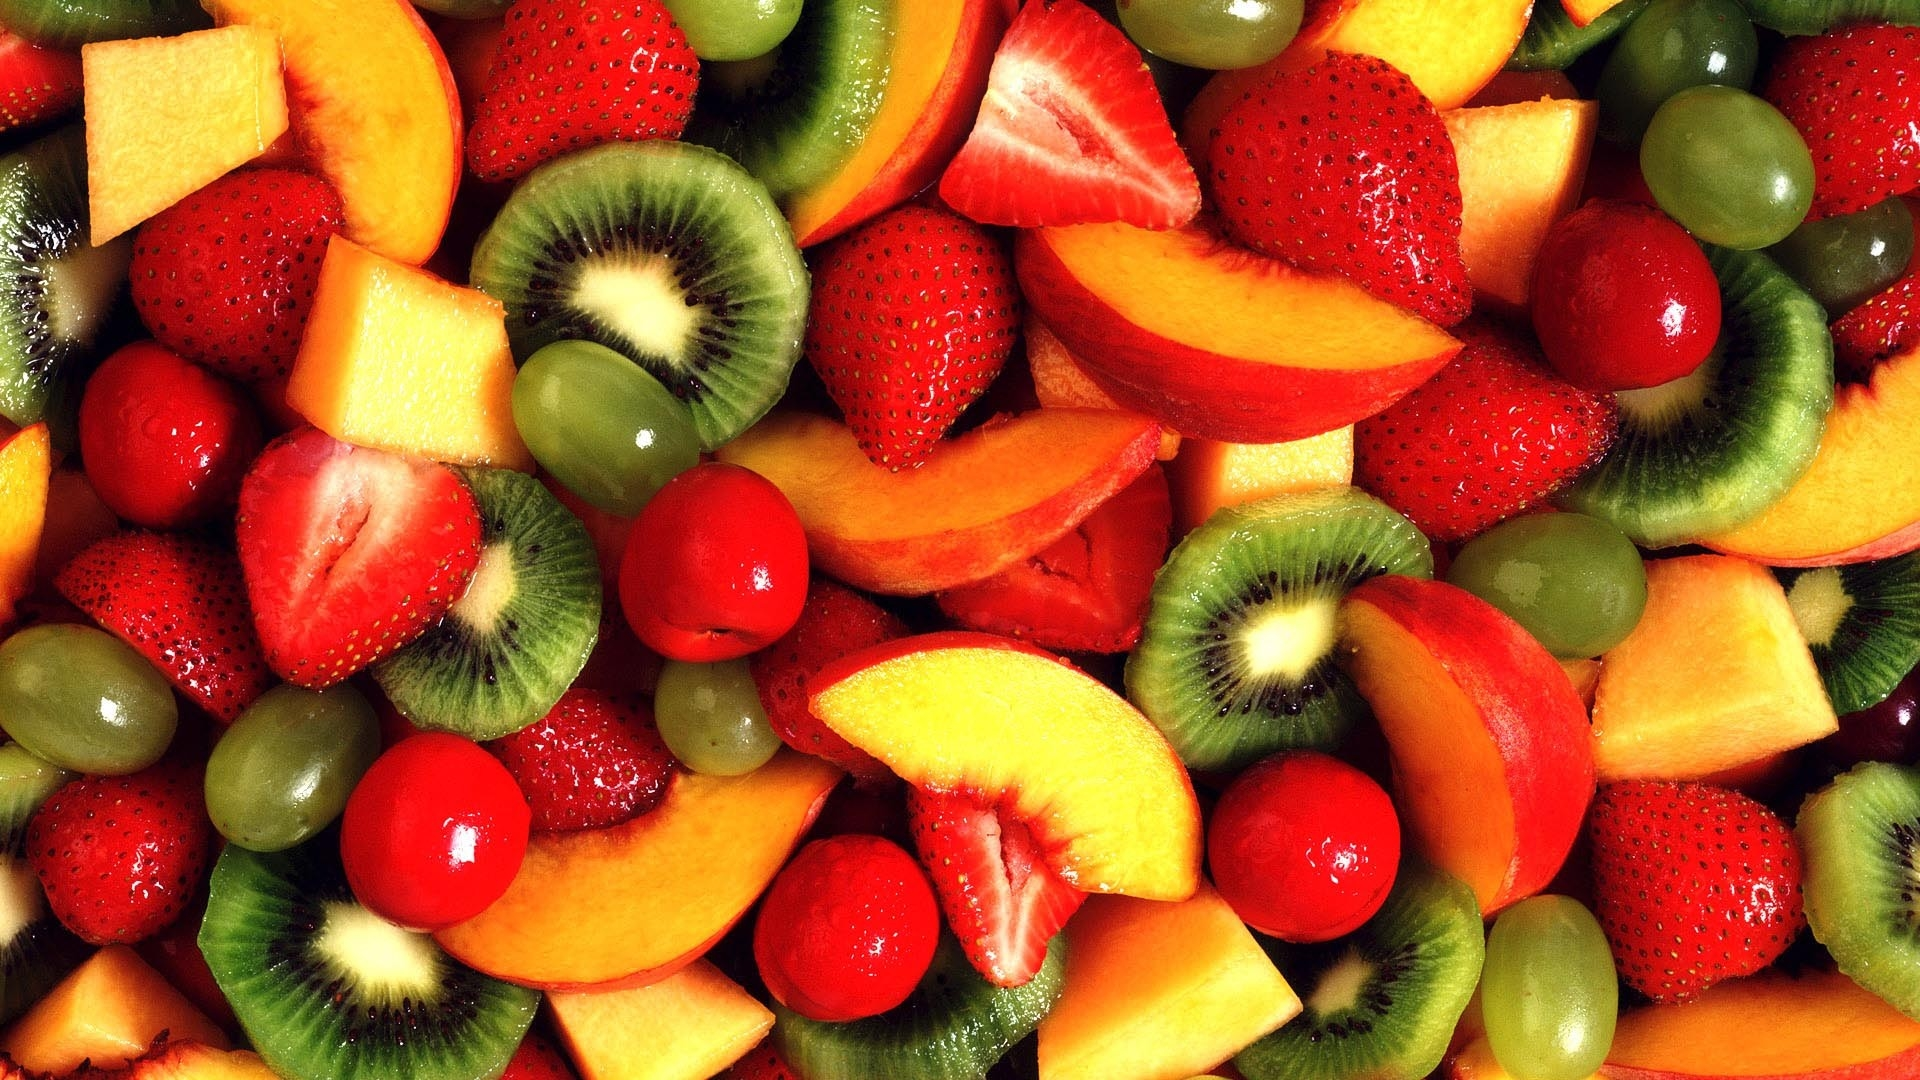 All the fruits wallpaper - All Fruits Wallpaper